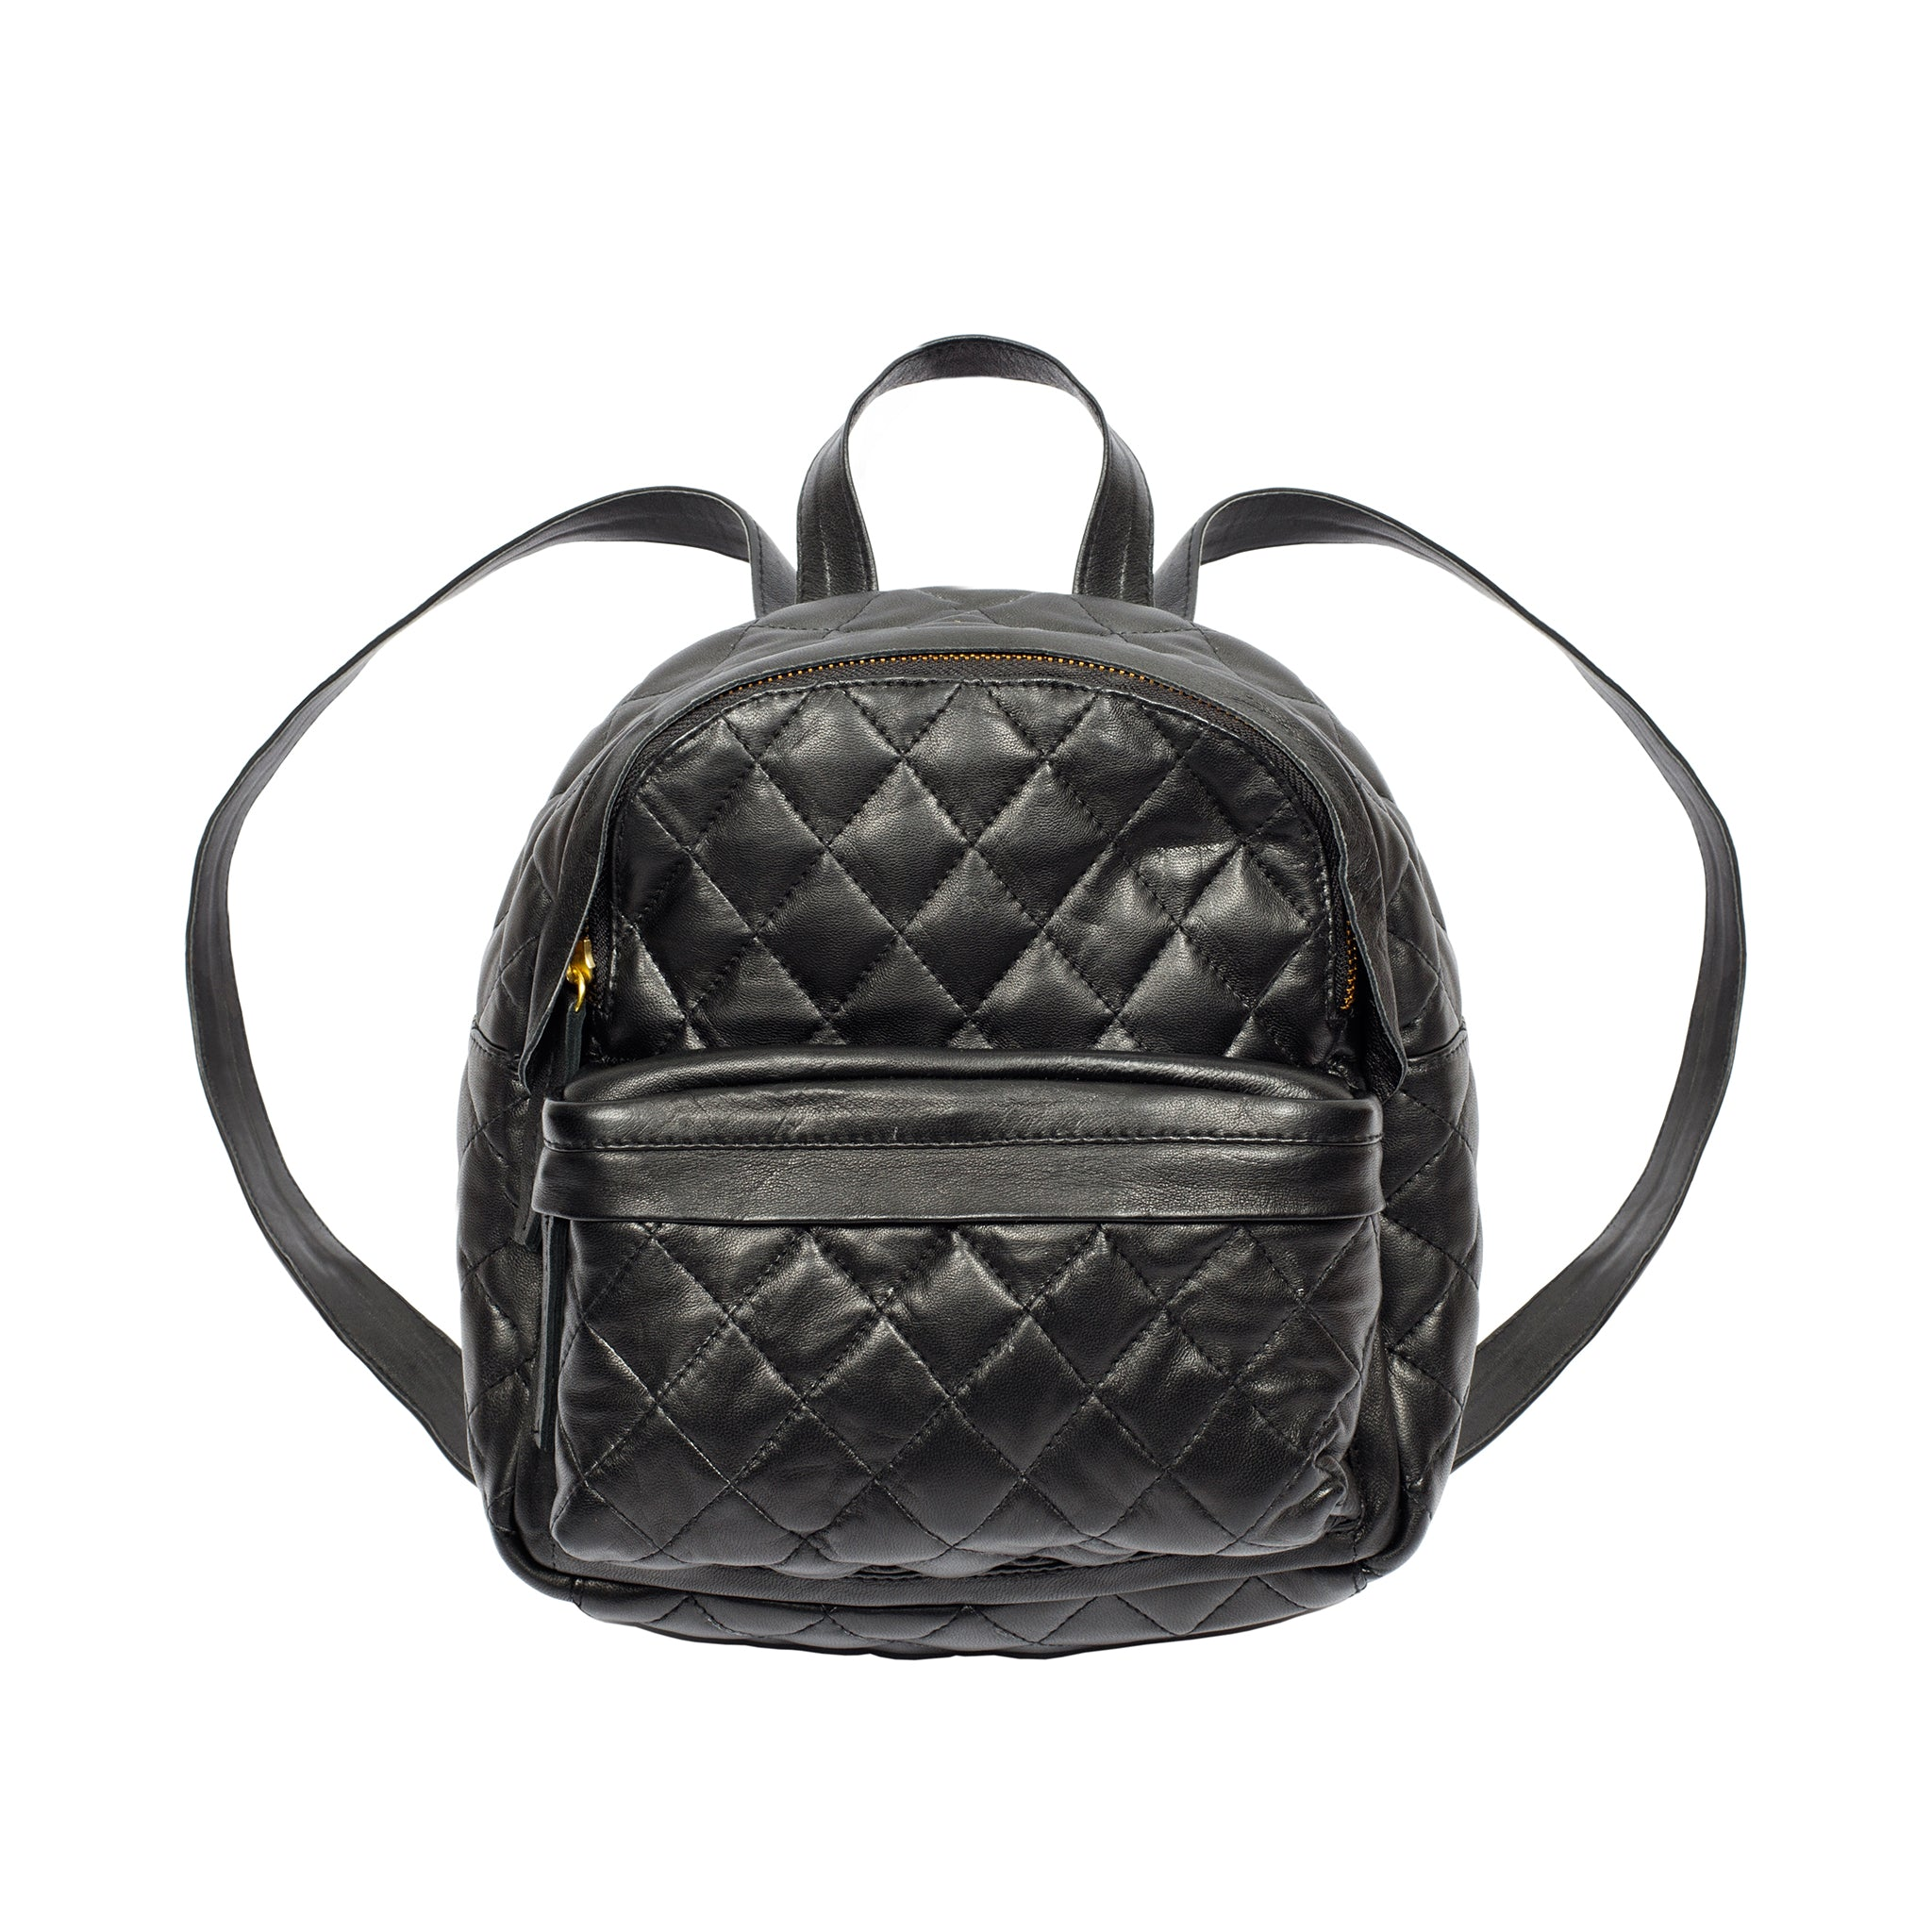 Women's black leather quilted backpack; Travel bag; black backpack